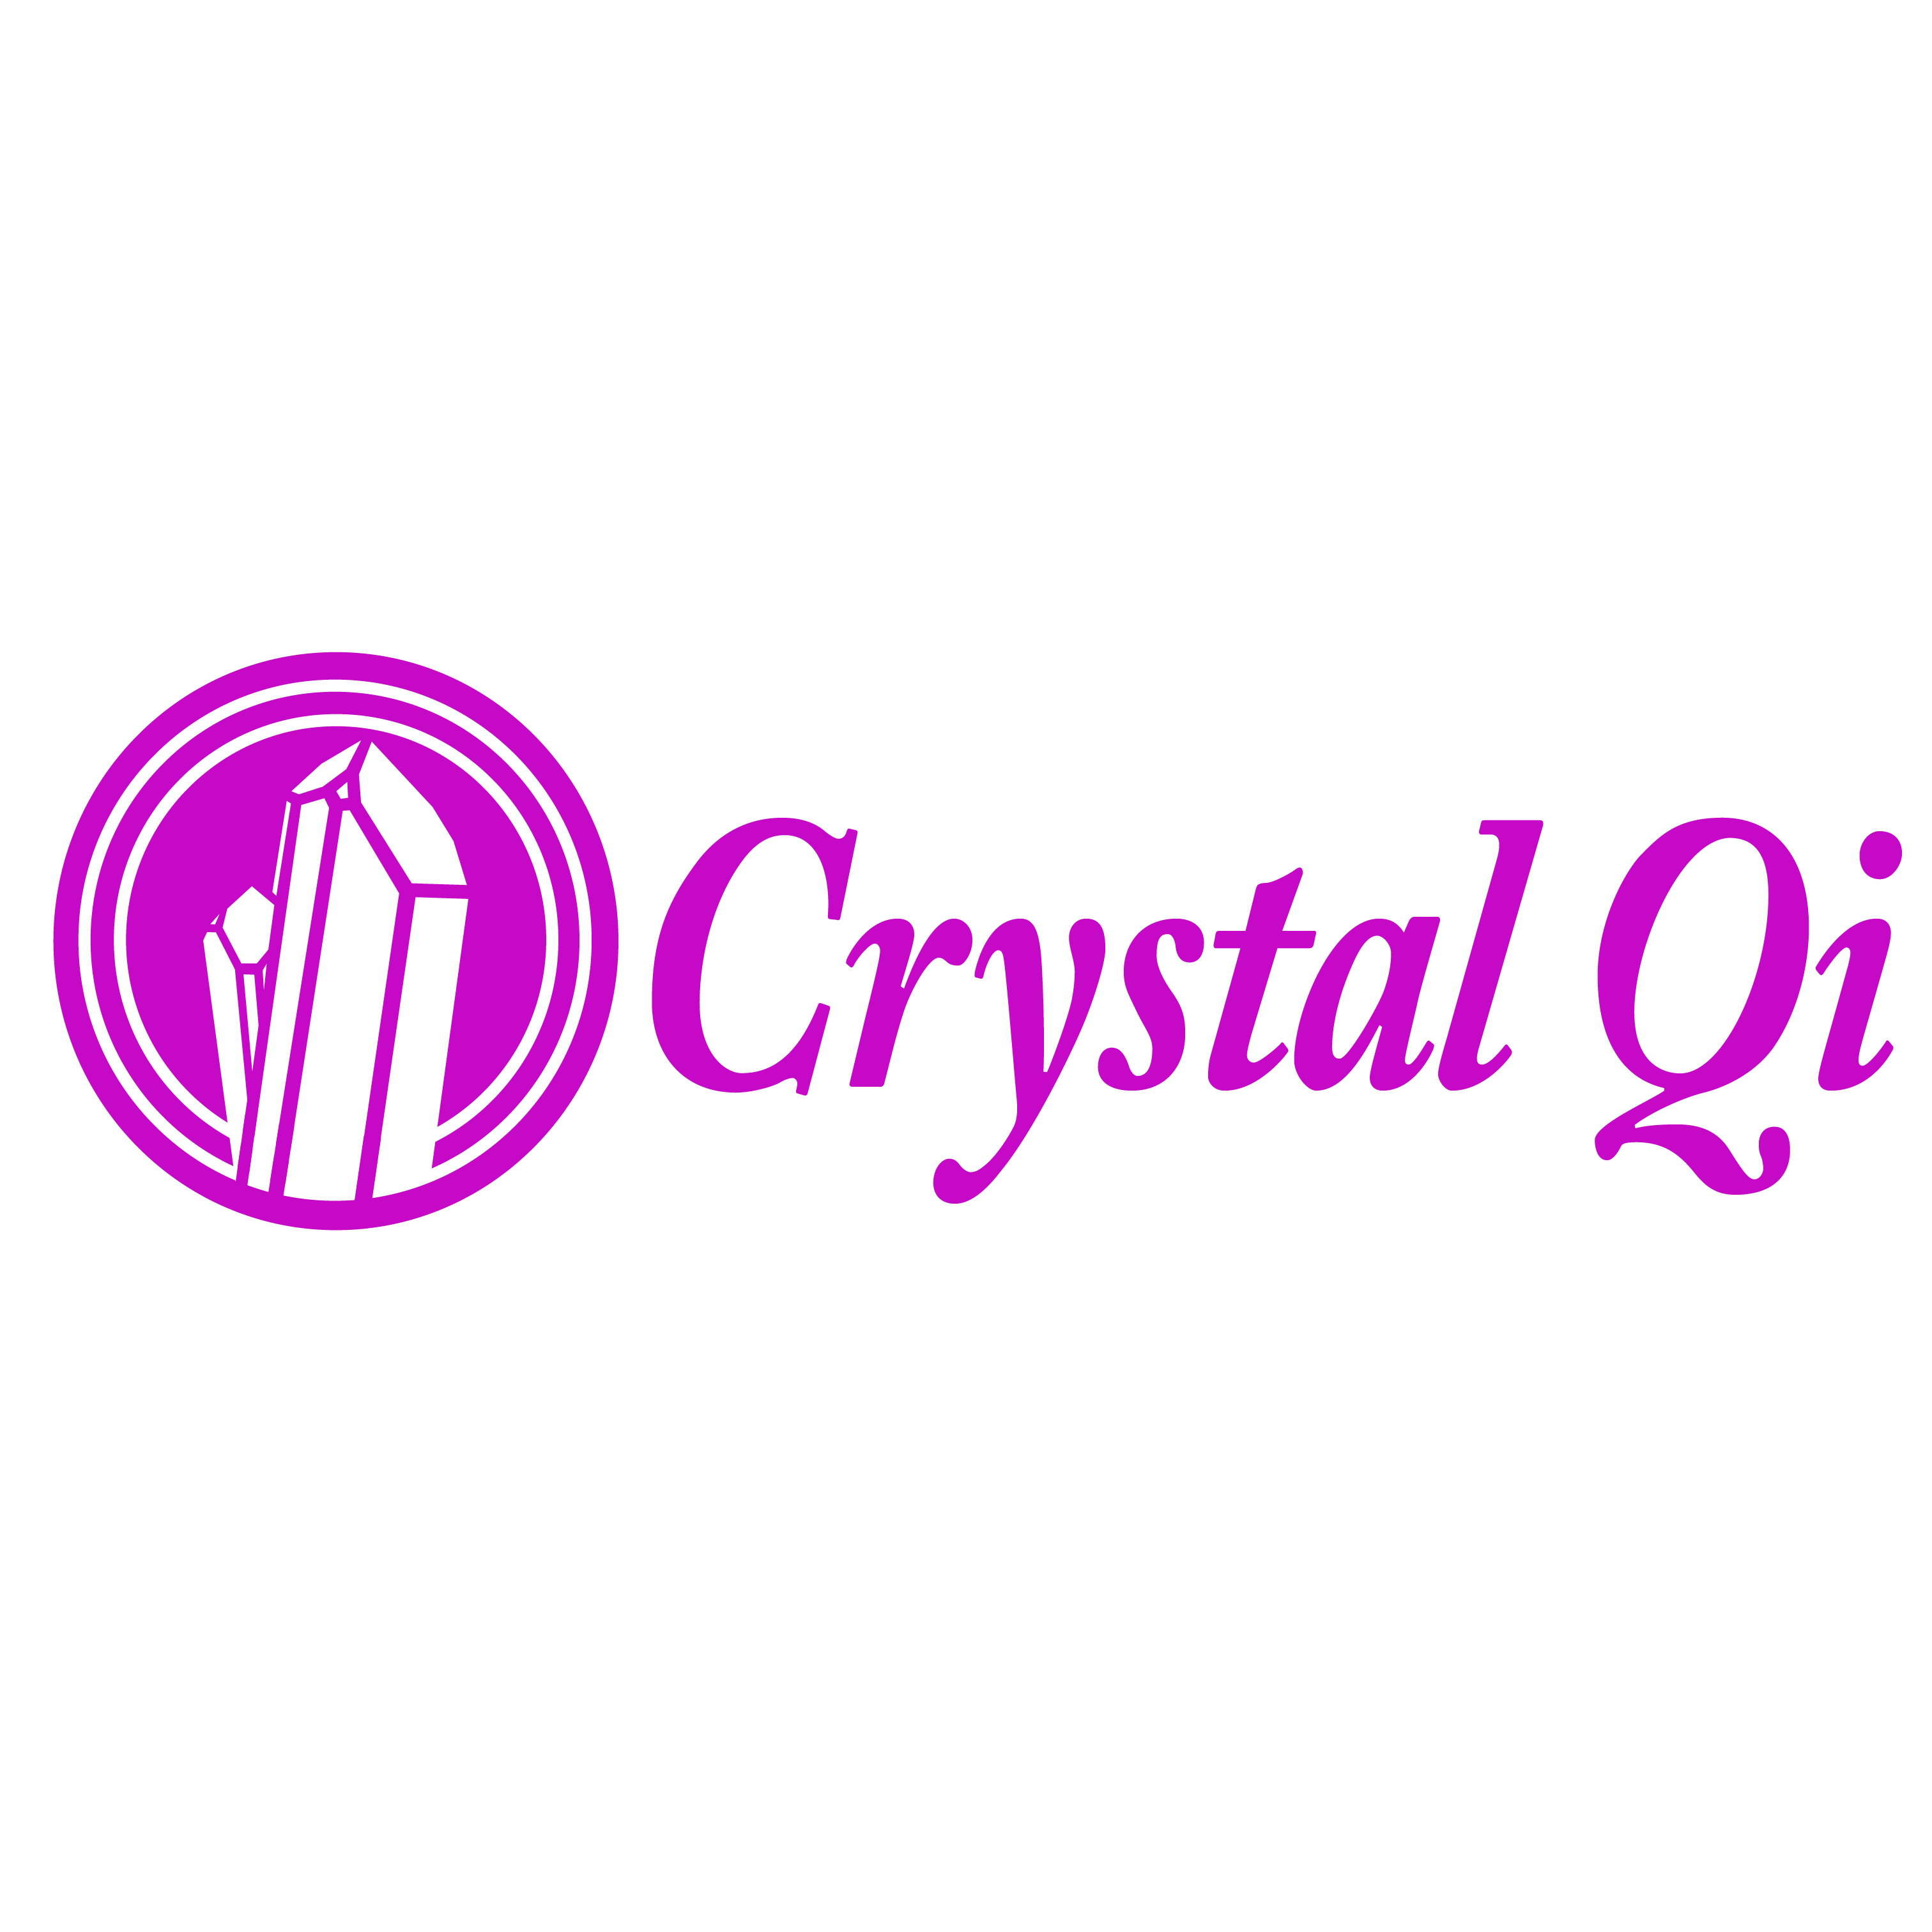 7 Client Crystal qi